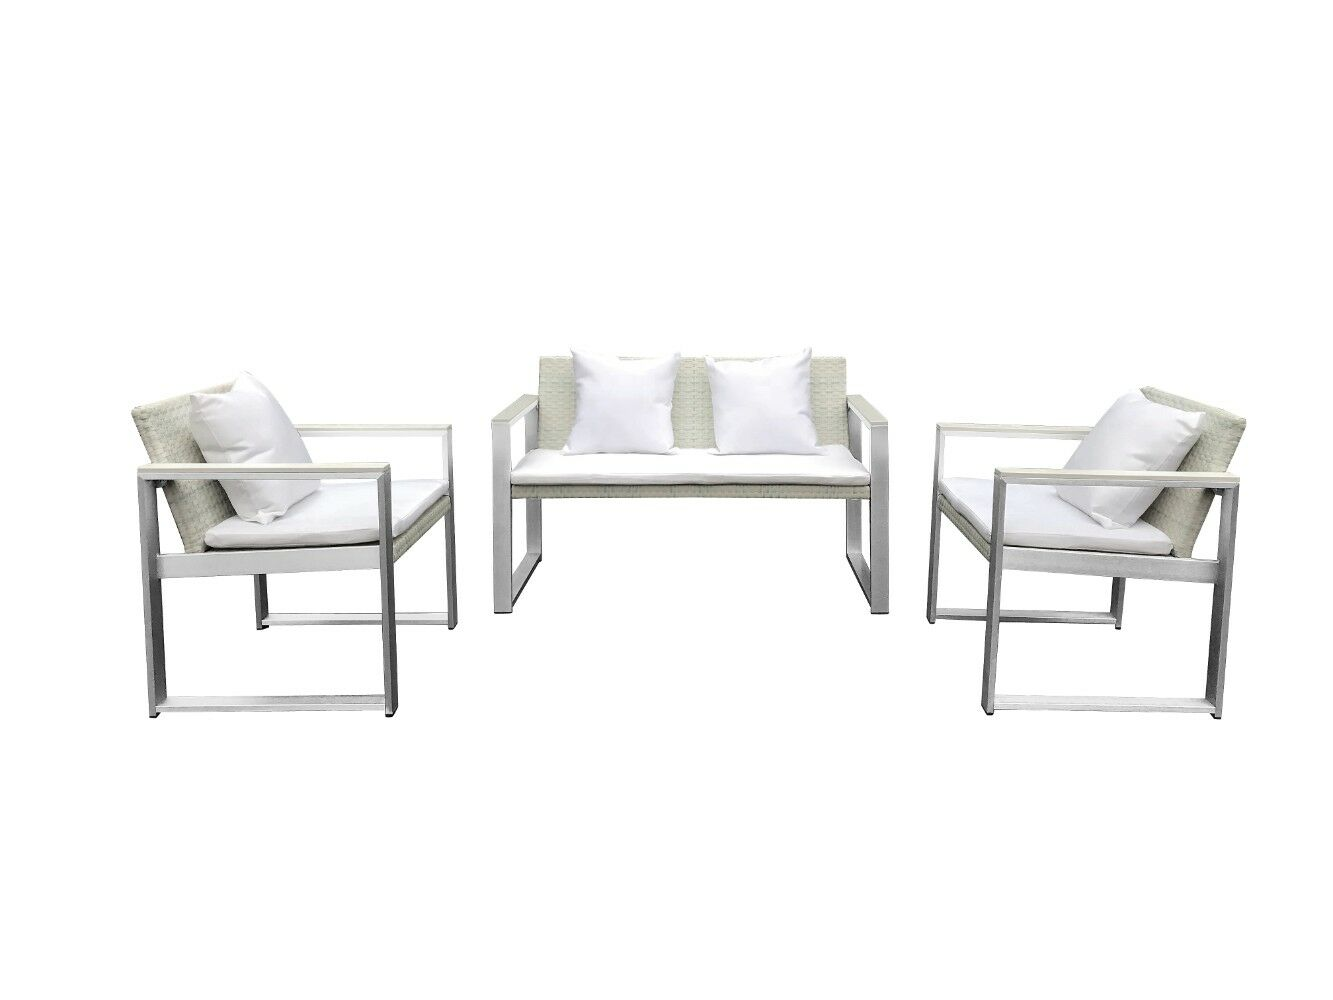 Leal 4 Piece Rattan Sofa Seating Group with Cushions Frame Finish: Gray, Cushion Color: White